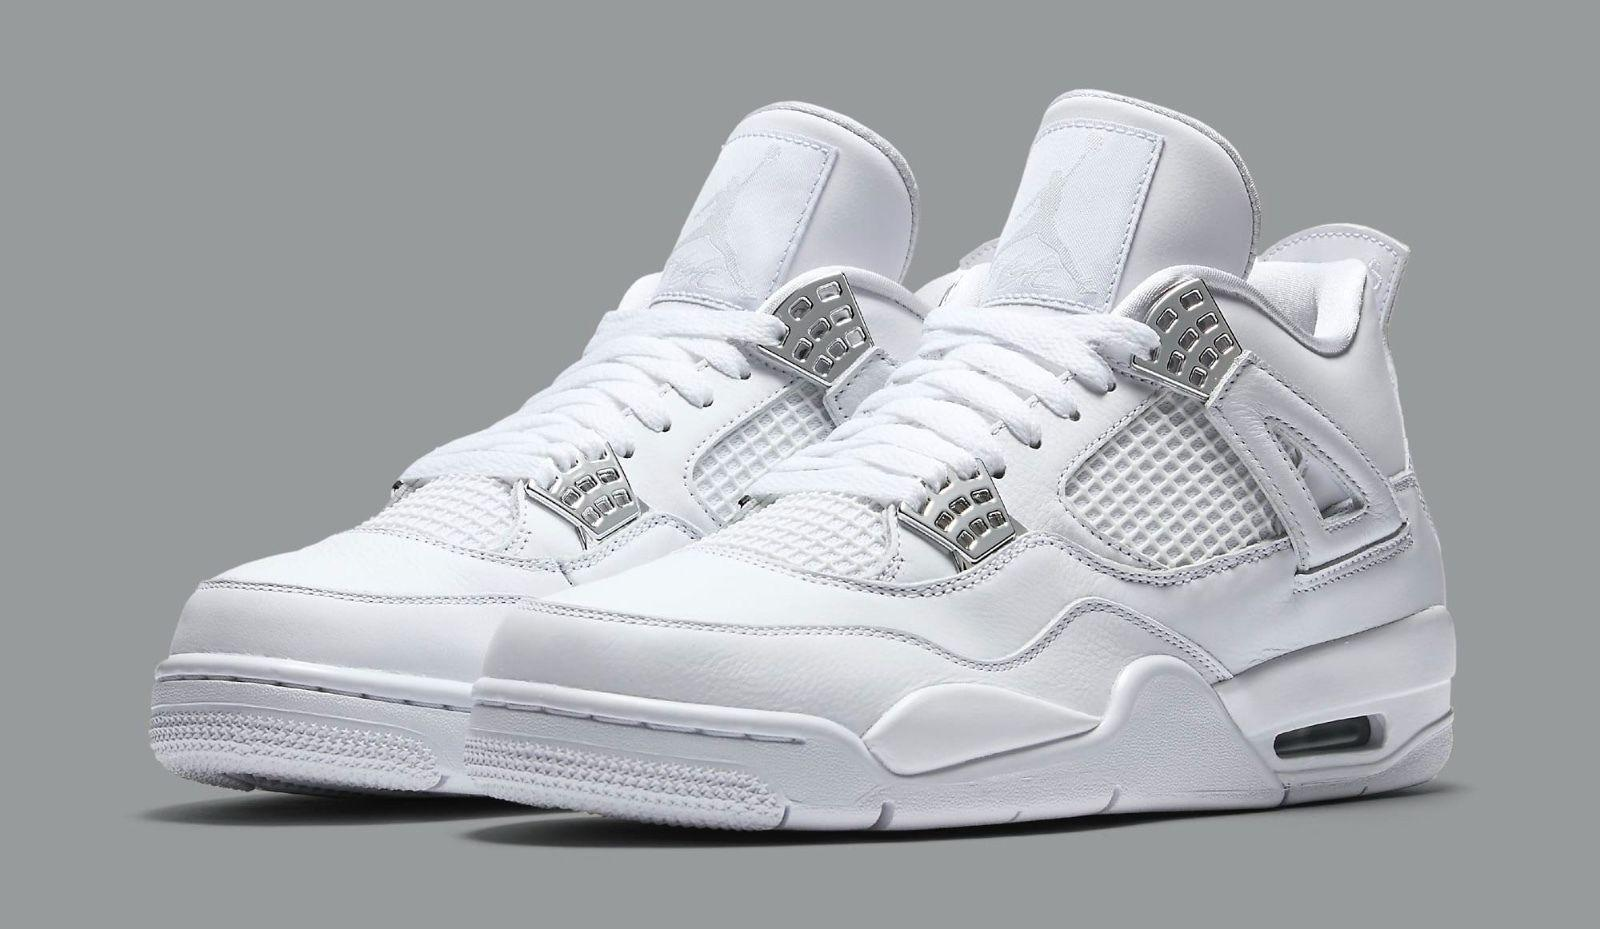 AIR JORDAN 4 PURE MONEY(308497-100)